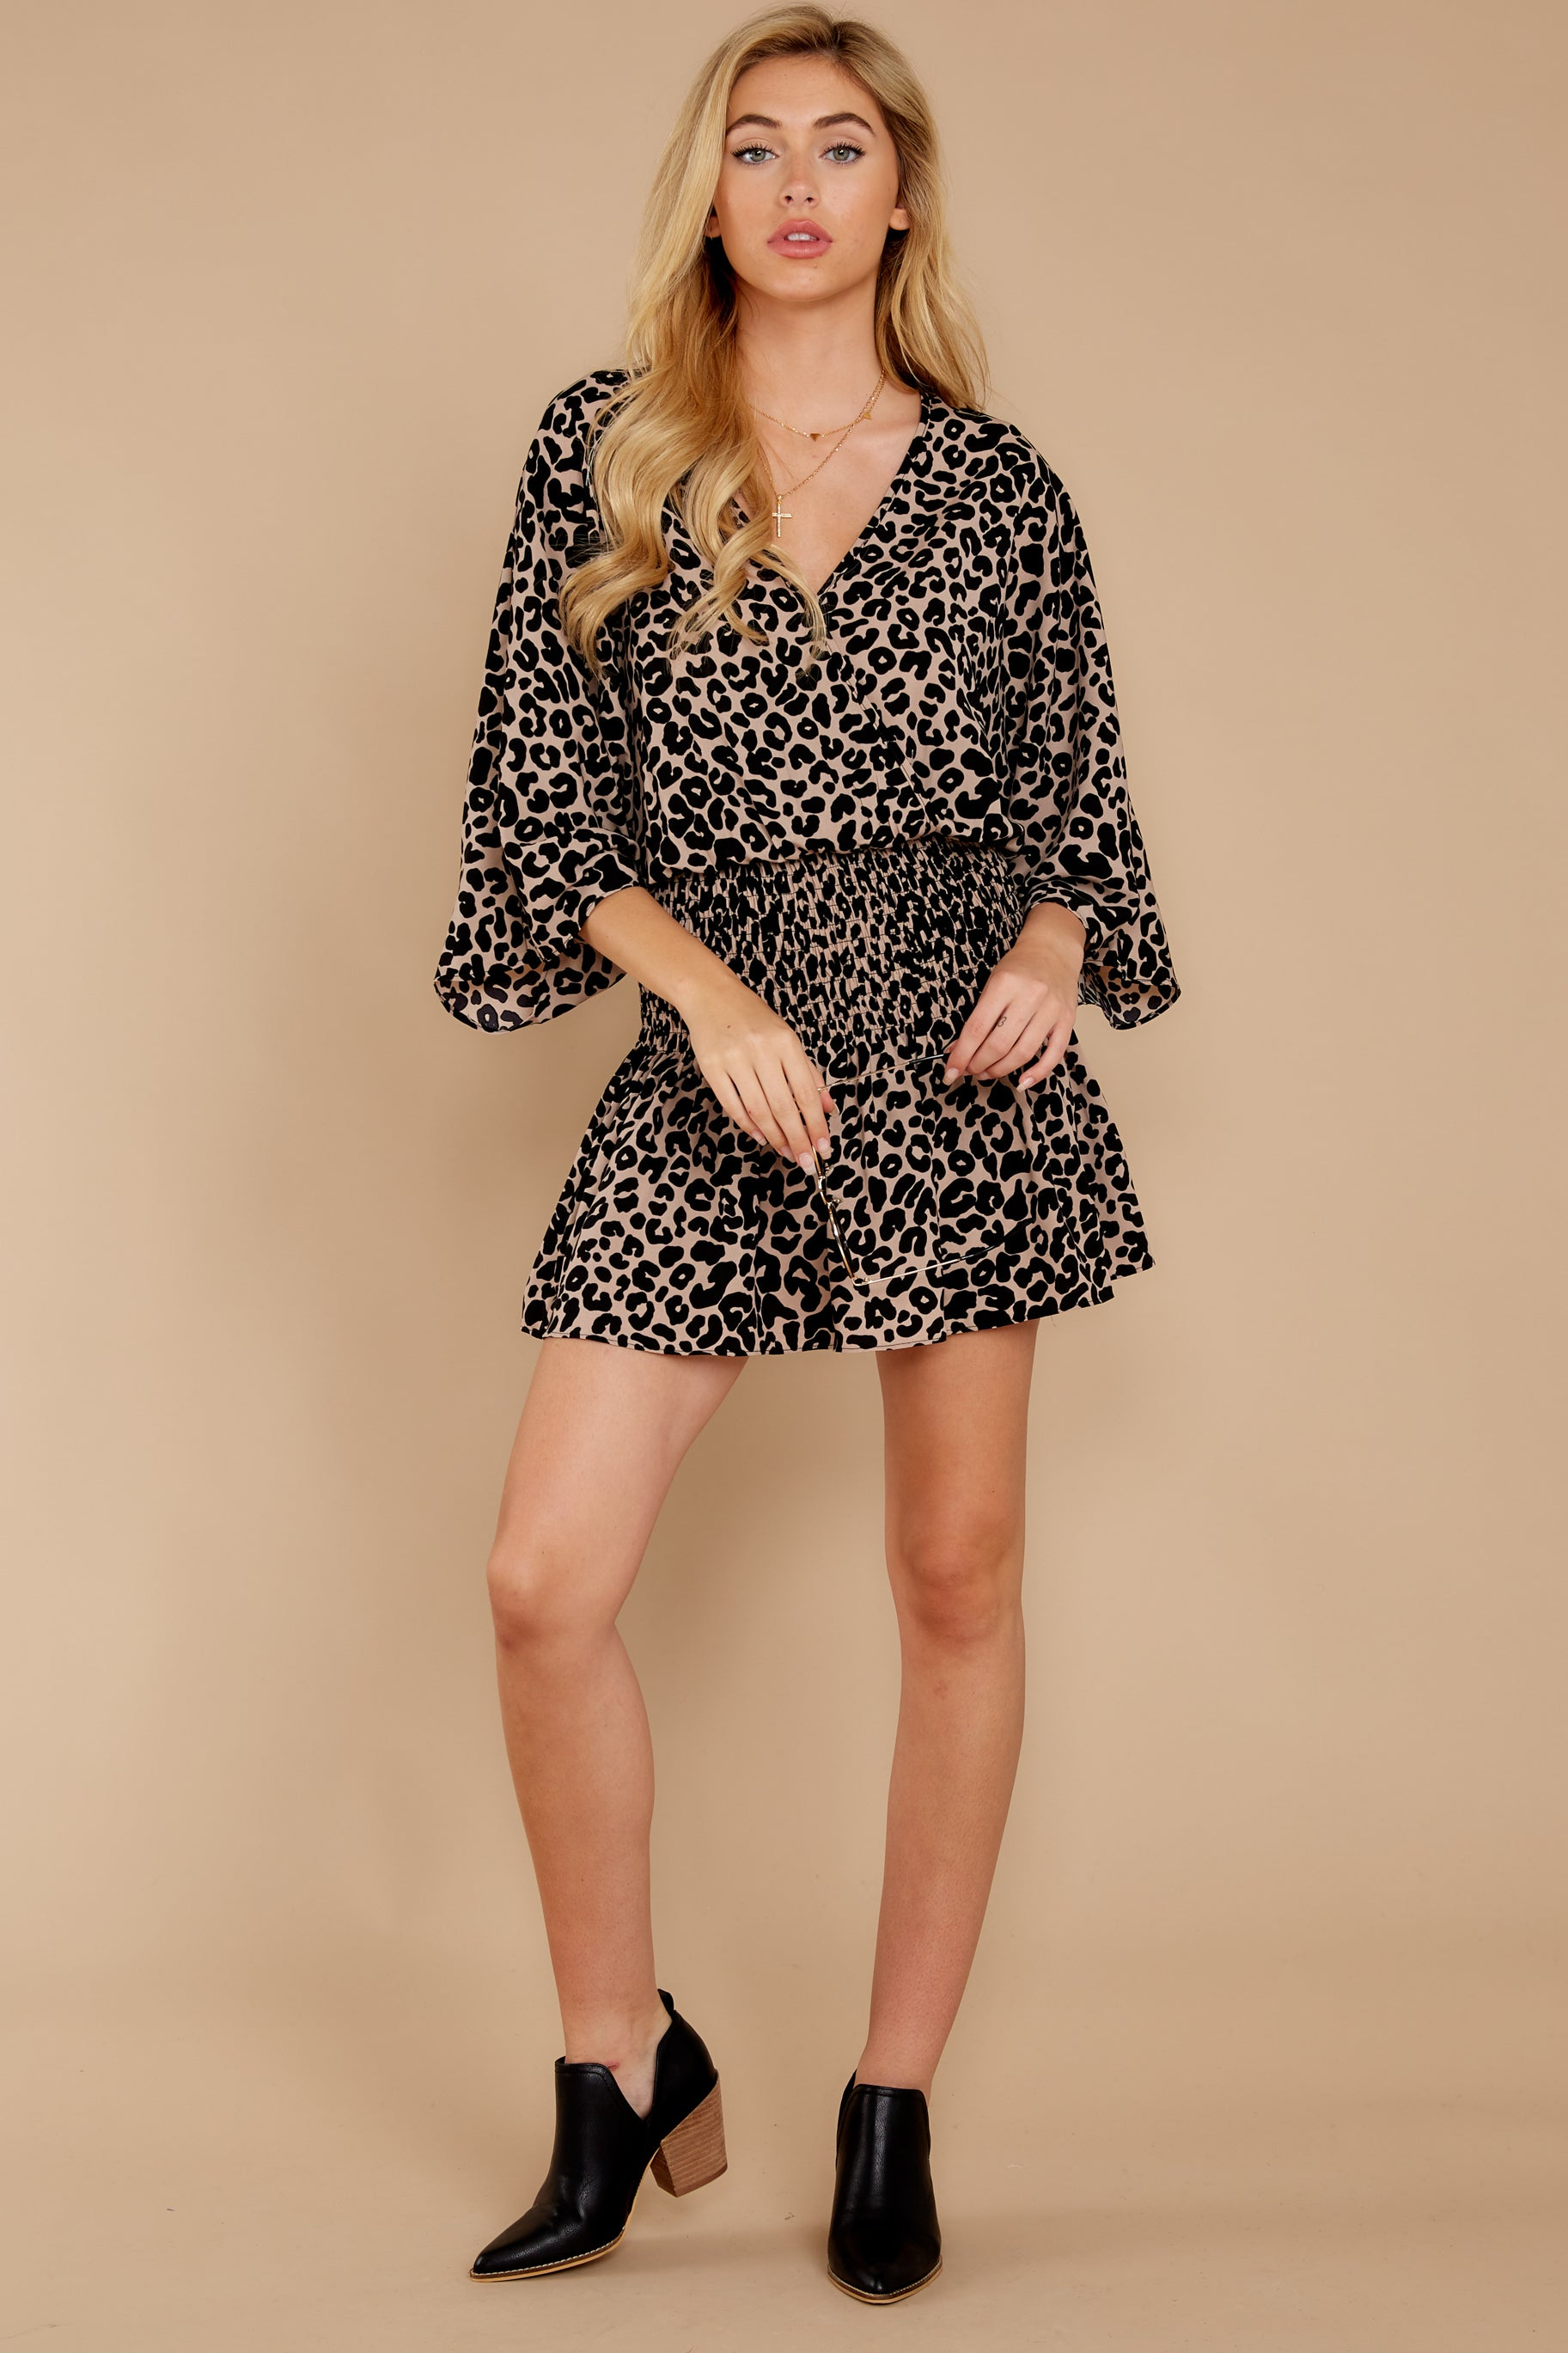 2 Such A Charmer Taupe Leopard Print Dress at reddressboutique.com